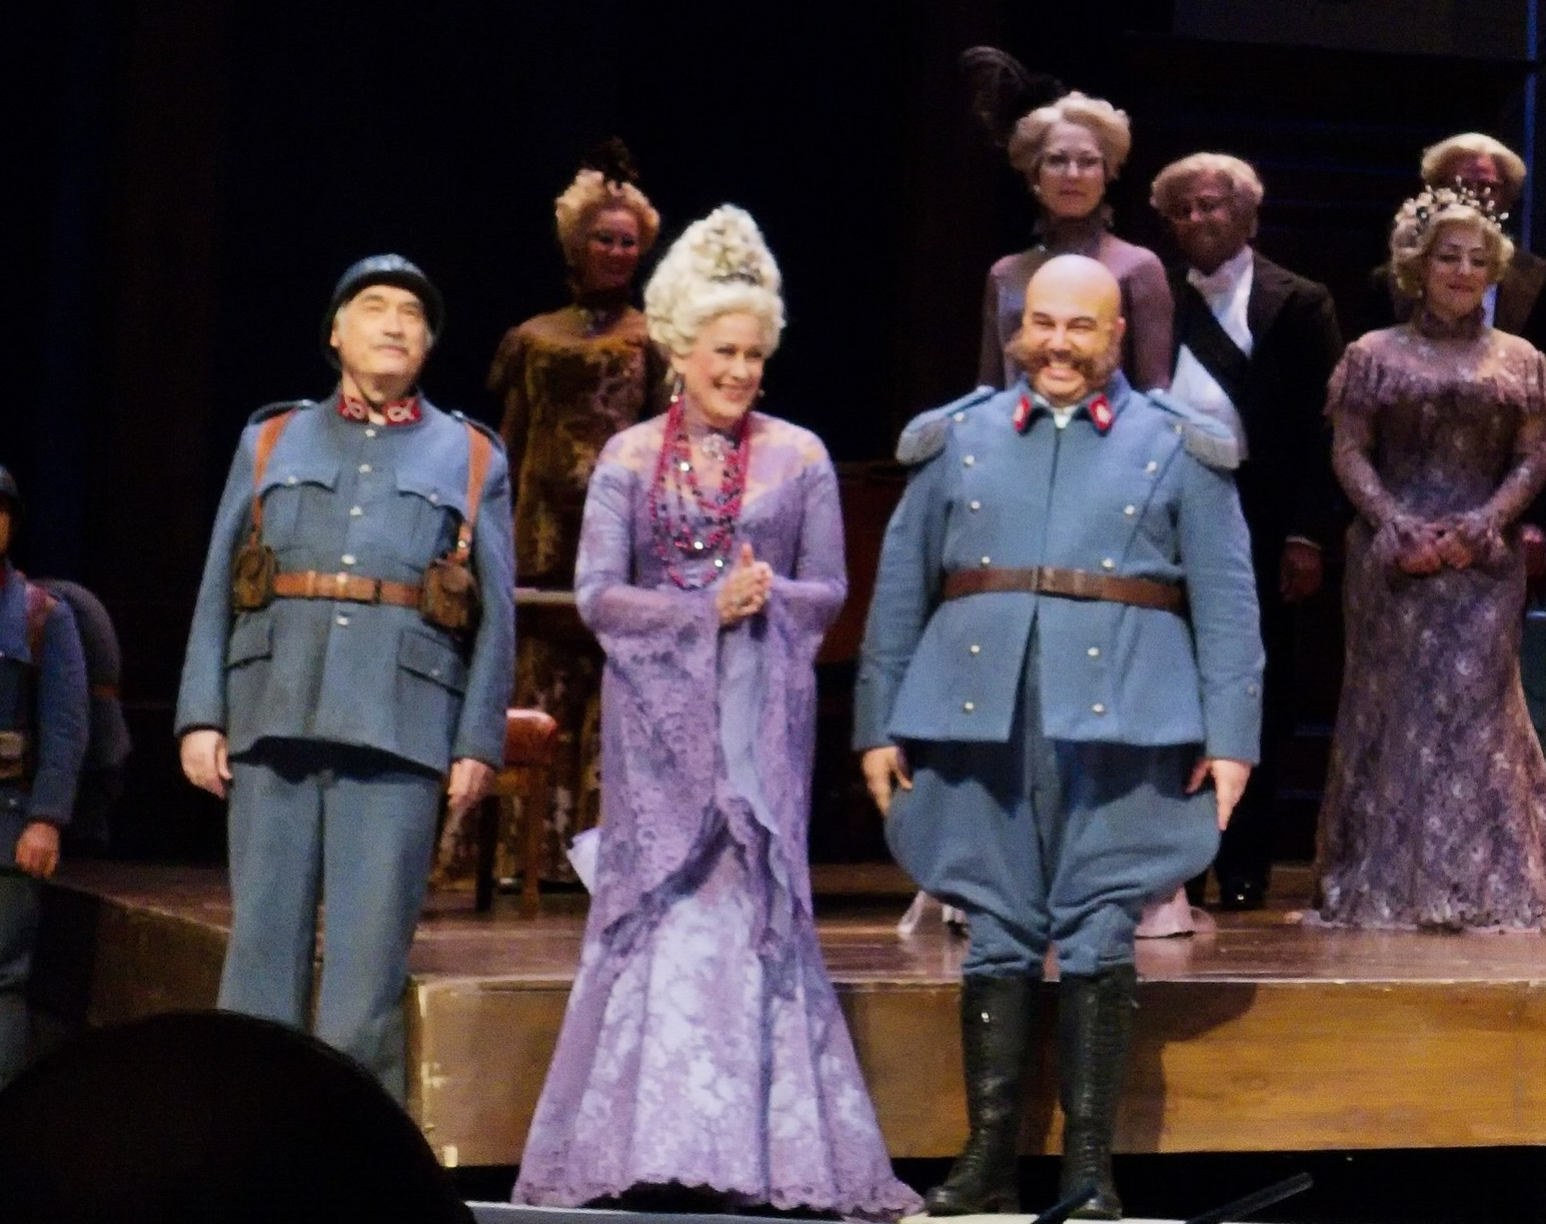 Roger (on the left) during a curtain call for  La fille du regiment .